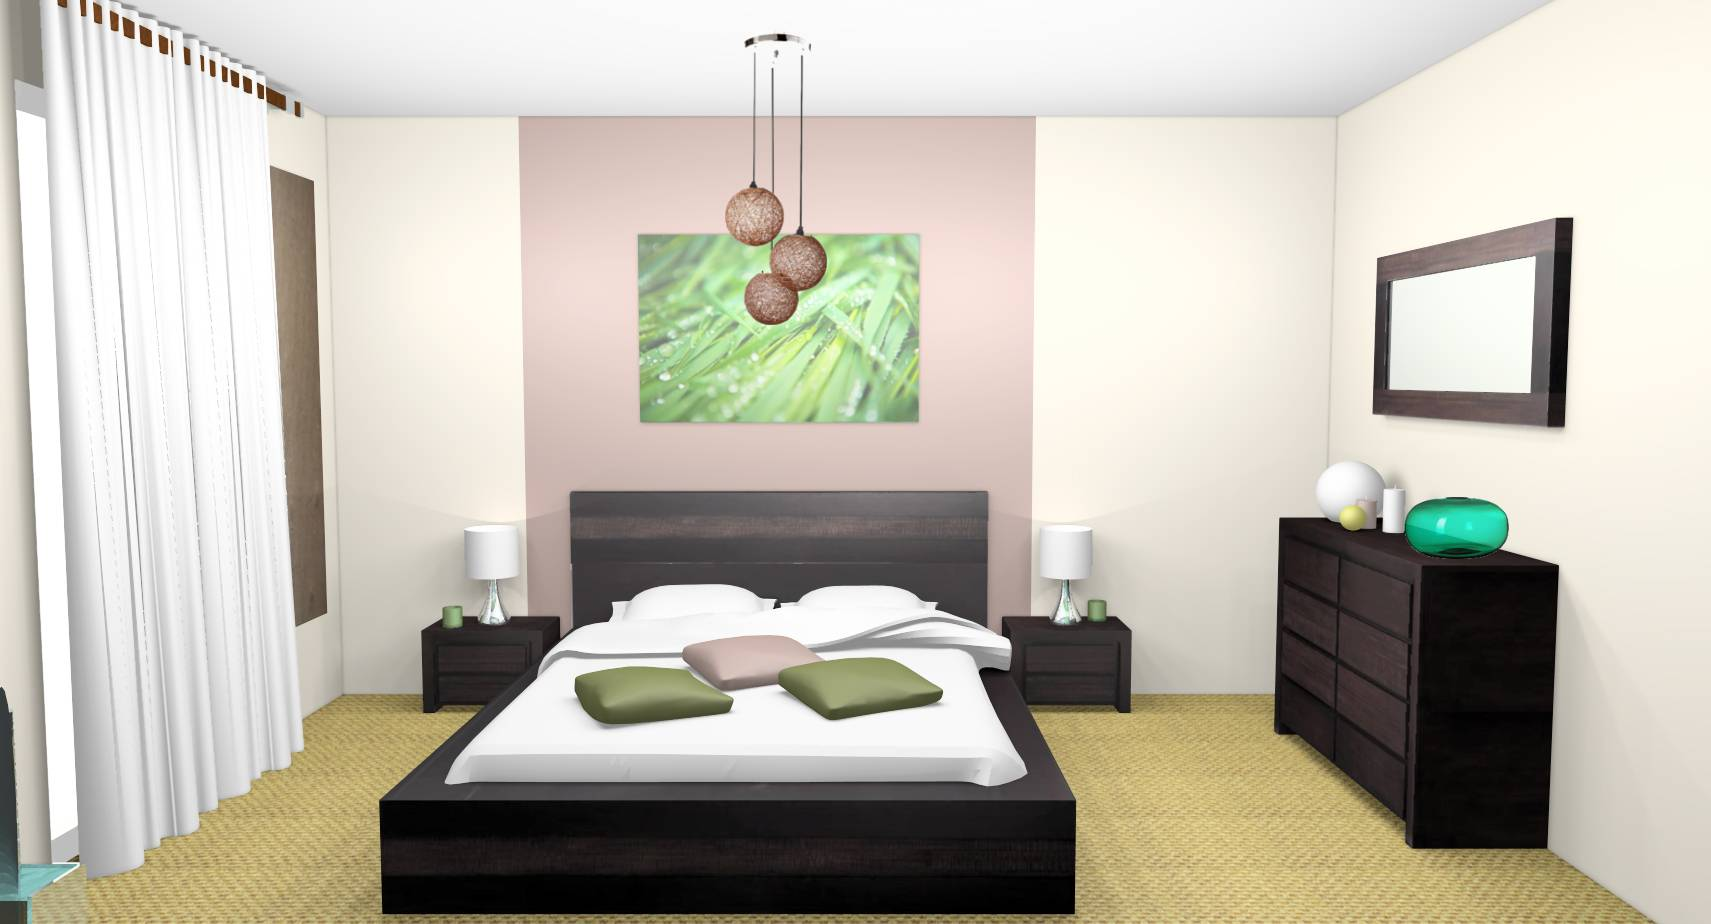 D coration chambre adulte zen Decoration interieur chambre adulte